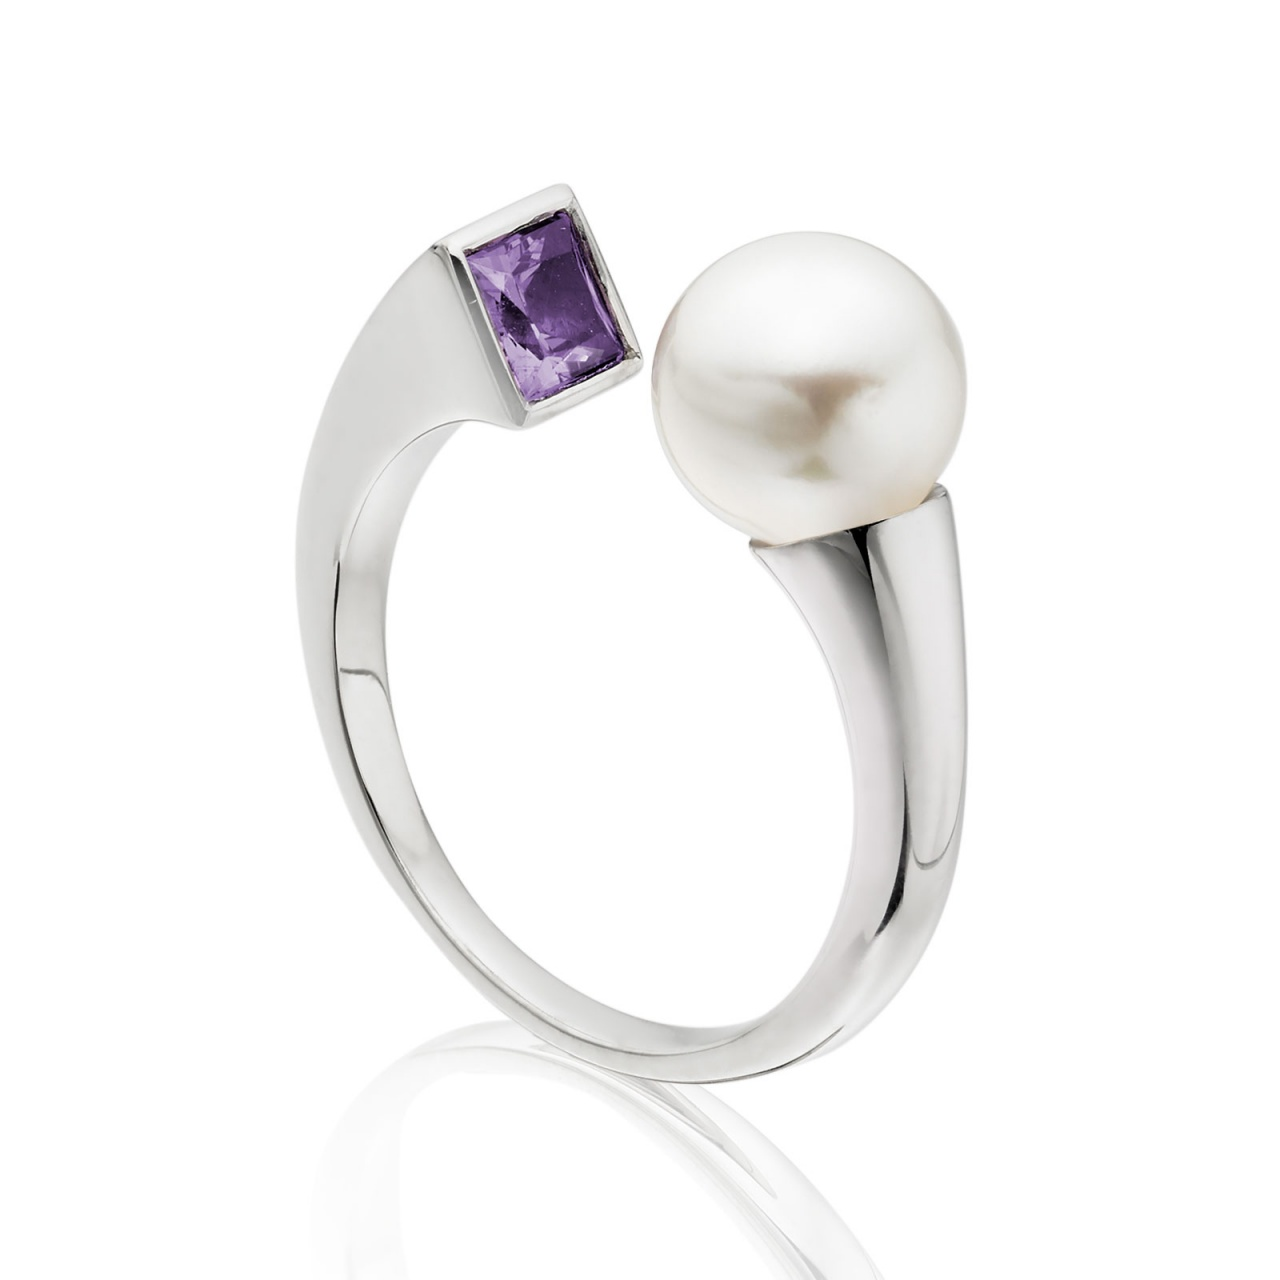 Lavender Eclipse Pearl Ring